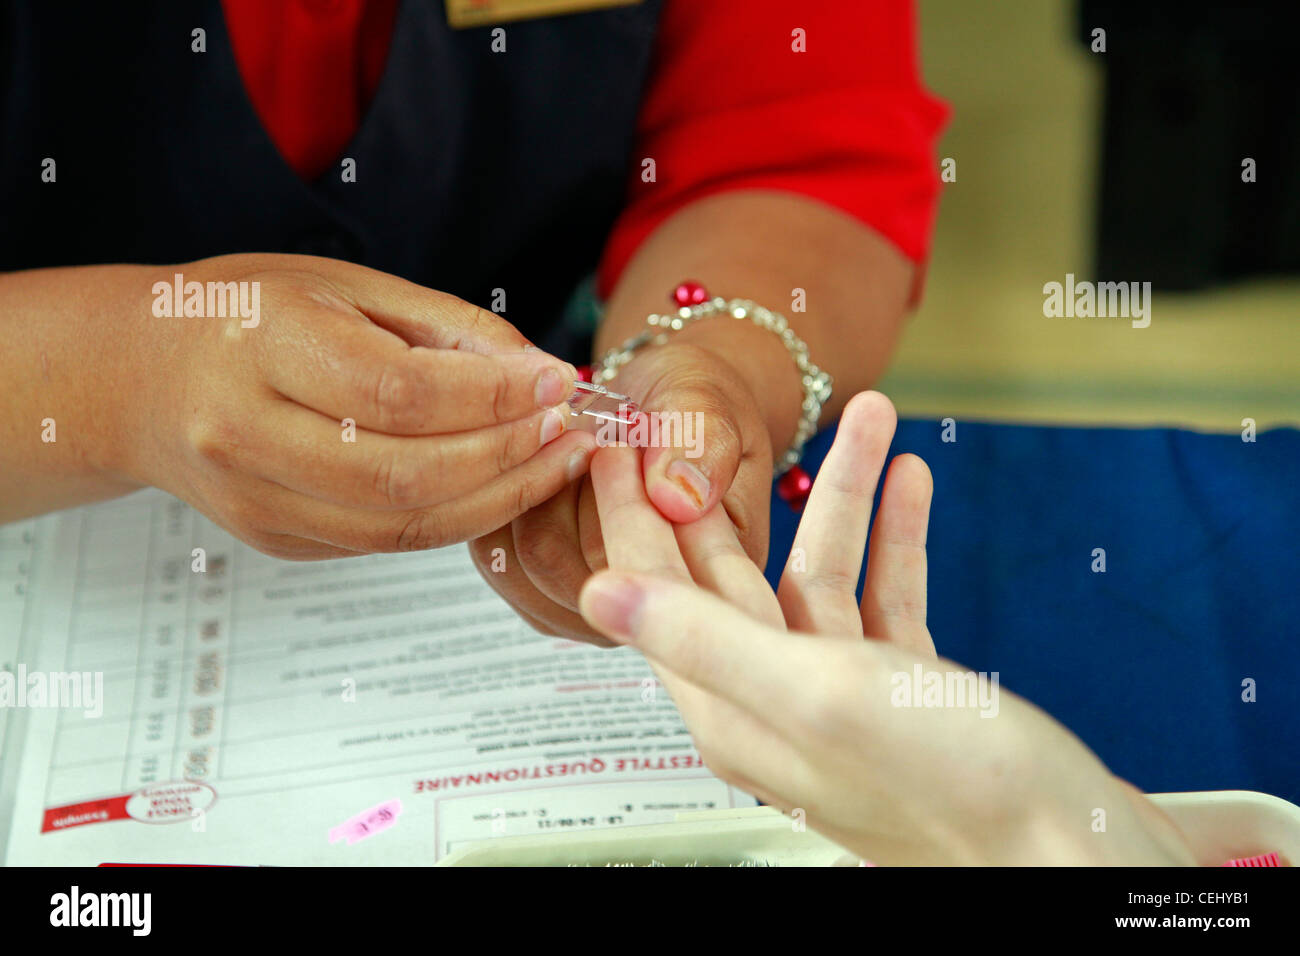 Blood donor having finger pricked to test hemoglobin level in blood as you cannot donate blood if you are anaemic, - Stock Image